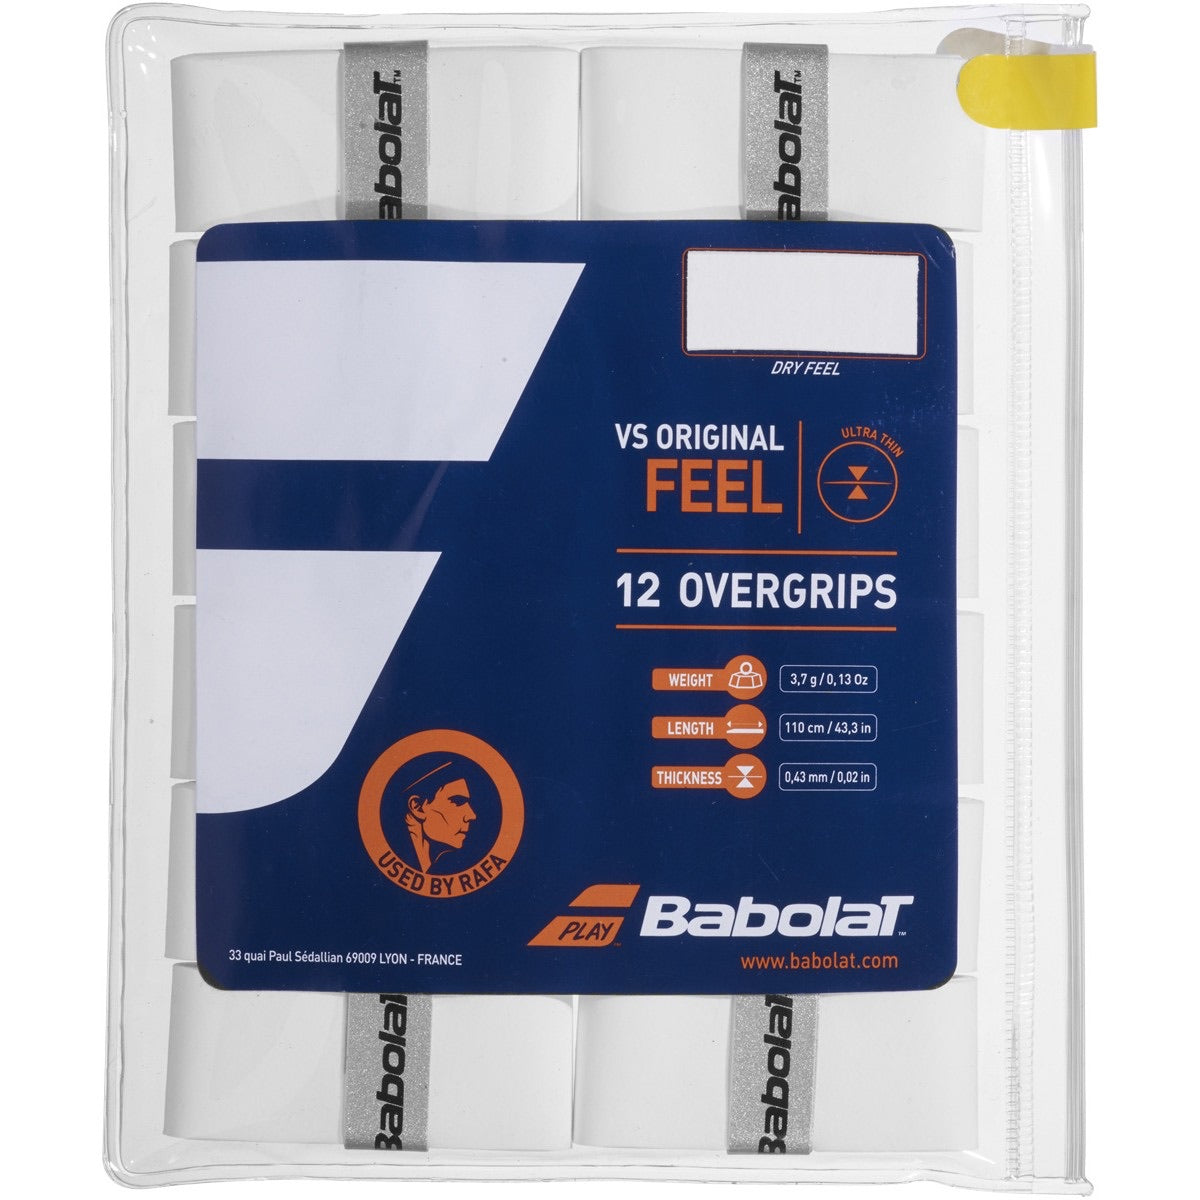 Babolat VS ORIGINAL FEEL 12 overgrips